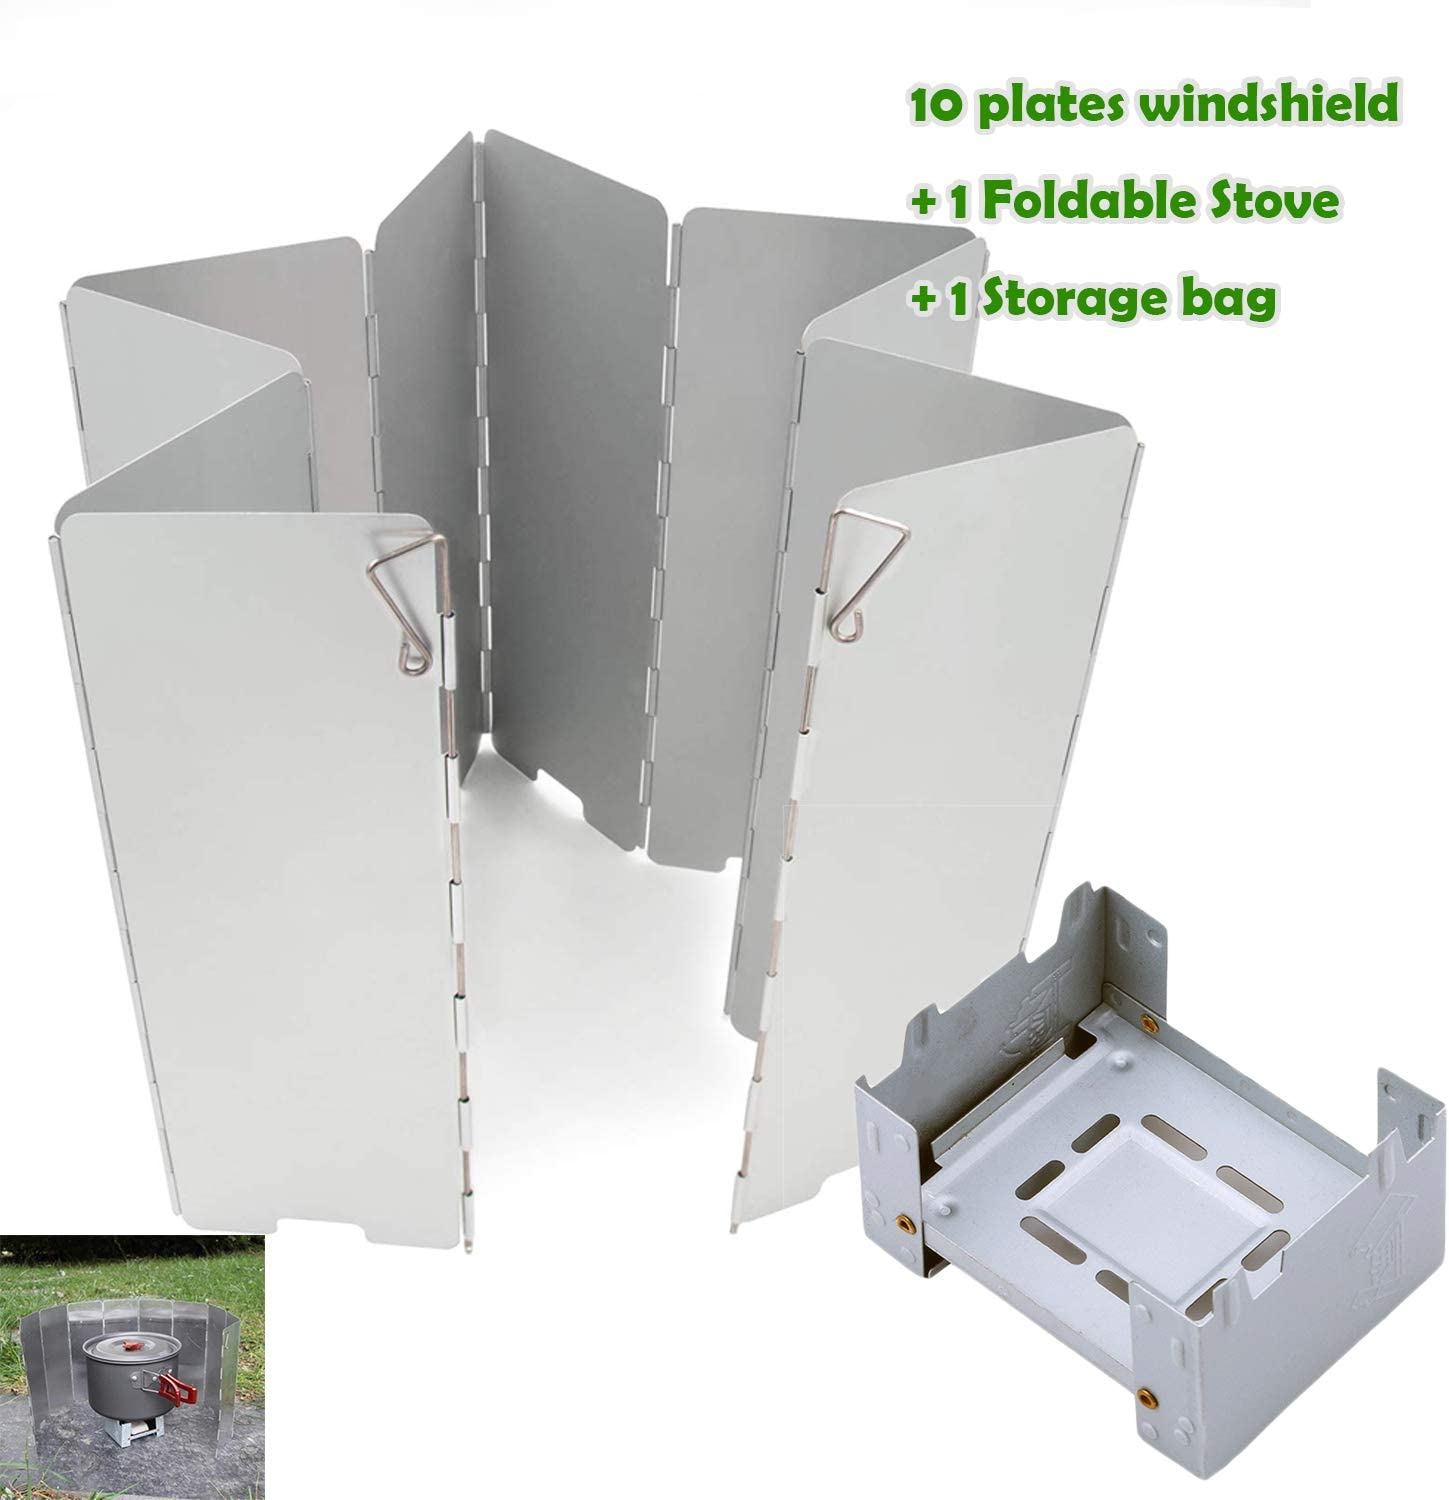 Rowland Harbor Camp Stove Windshield, Foldable Pocket Size 10 Plates Picnic Cooker Stove Windscreen with Ultralight Folding Pocket Stove